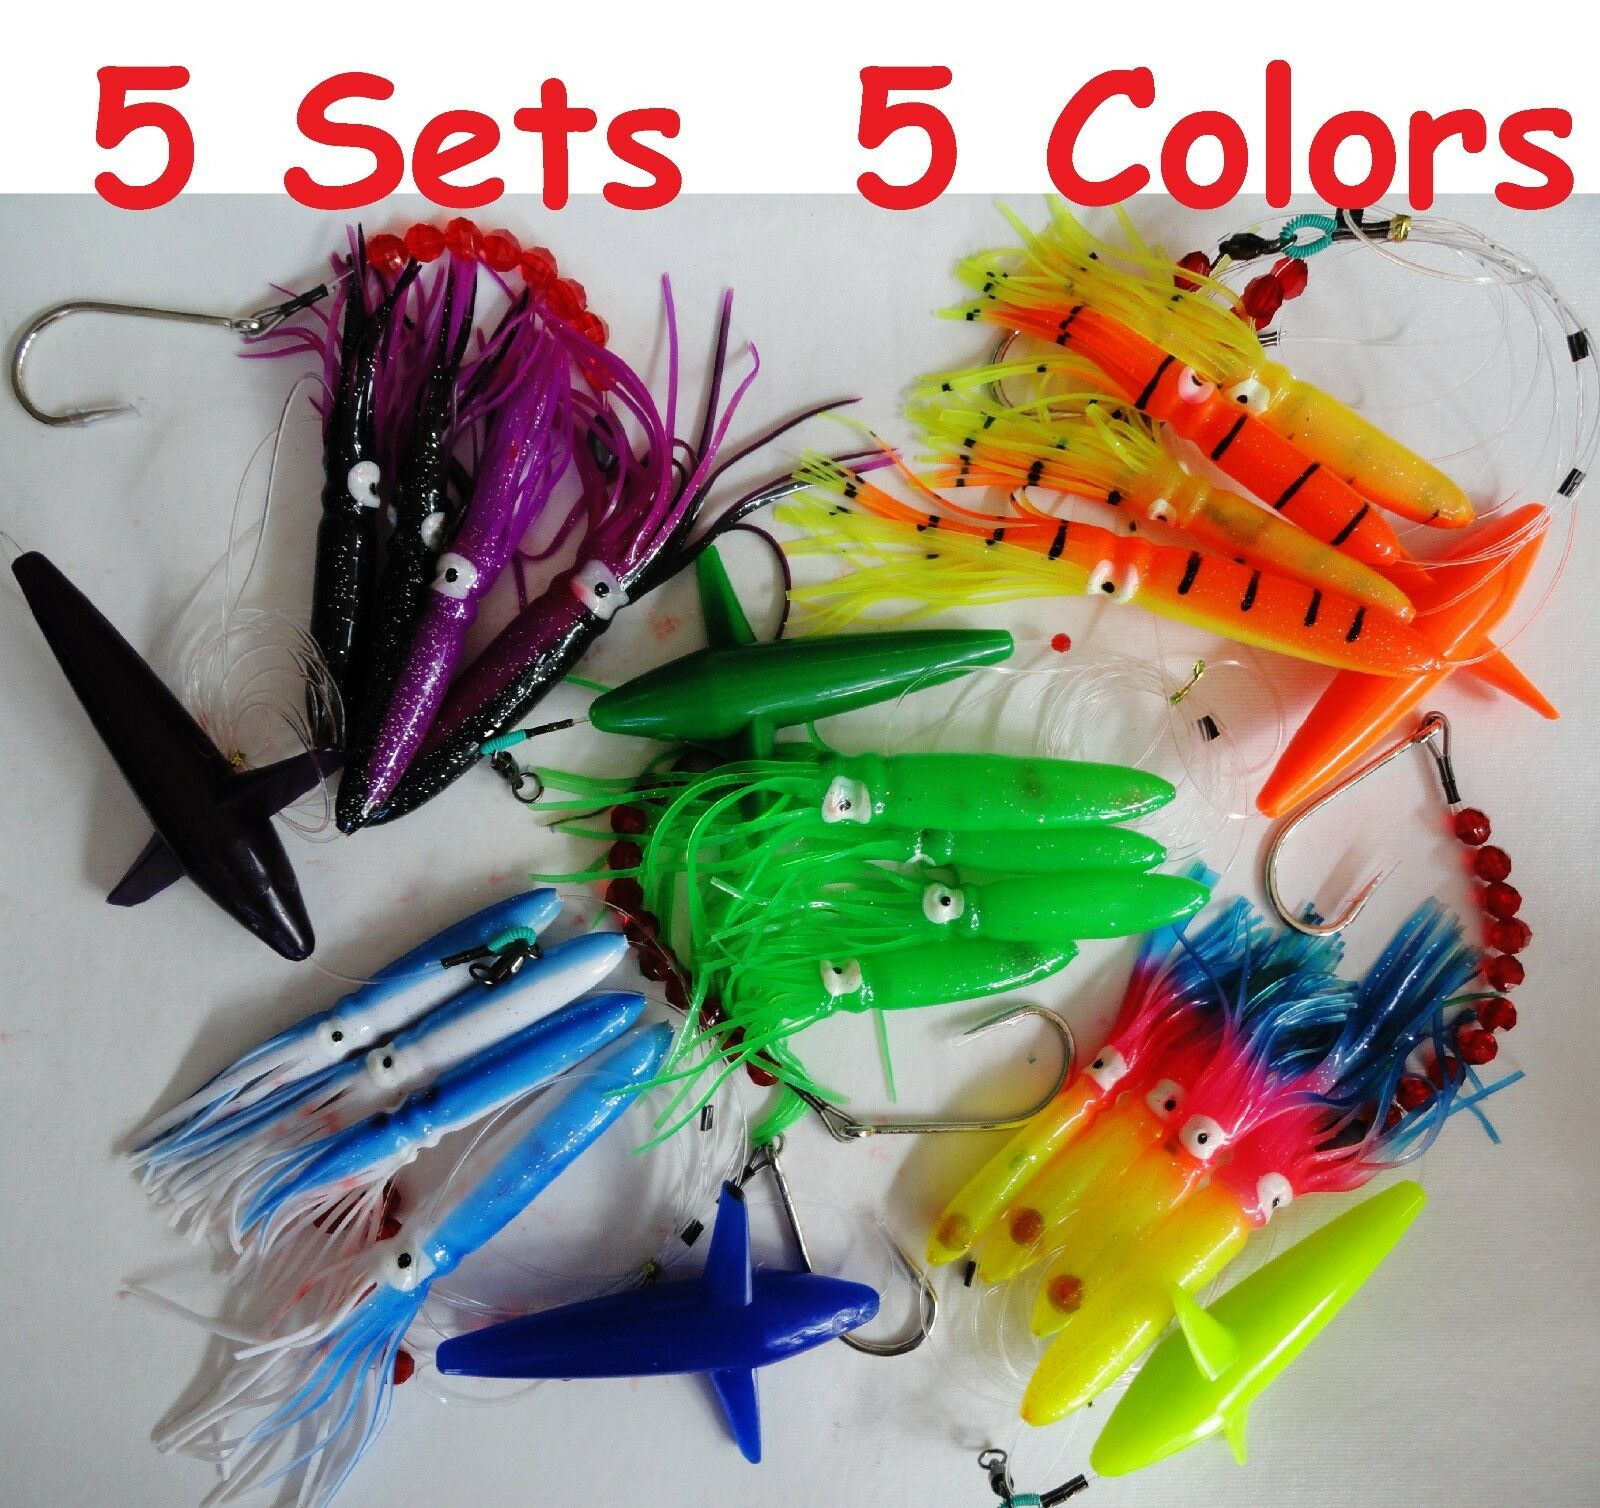 5 Sets DAISY CHAIN BAIT RIG BULB SQUID & BIRD TUNA MARLIN TROLLING LURES-RANDOM